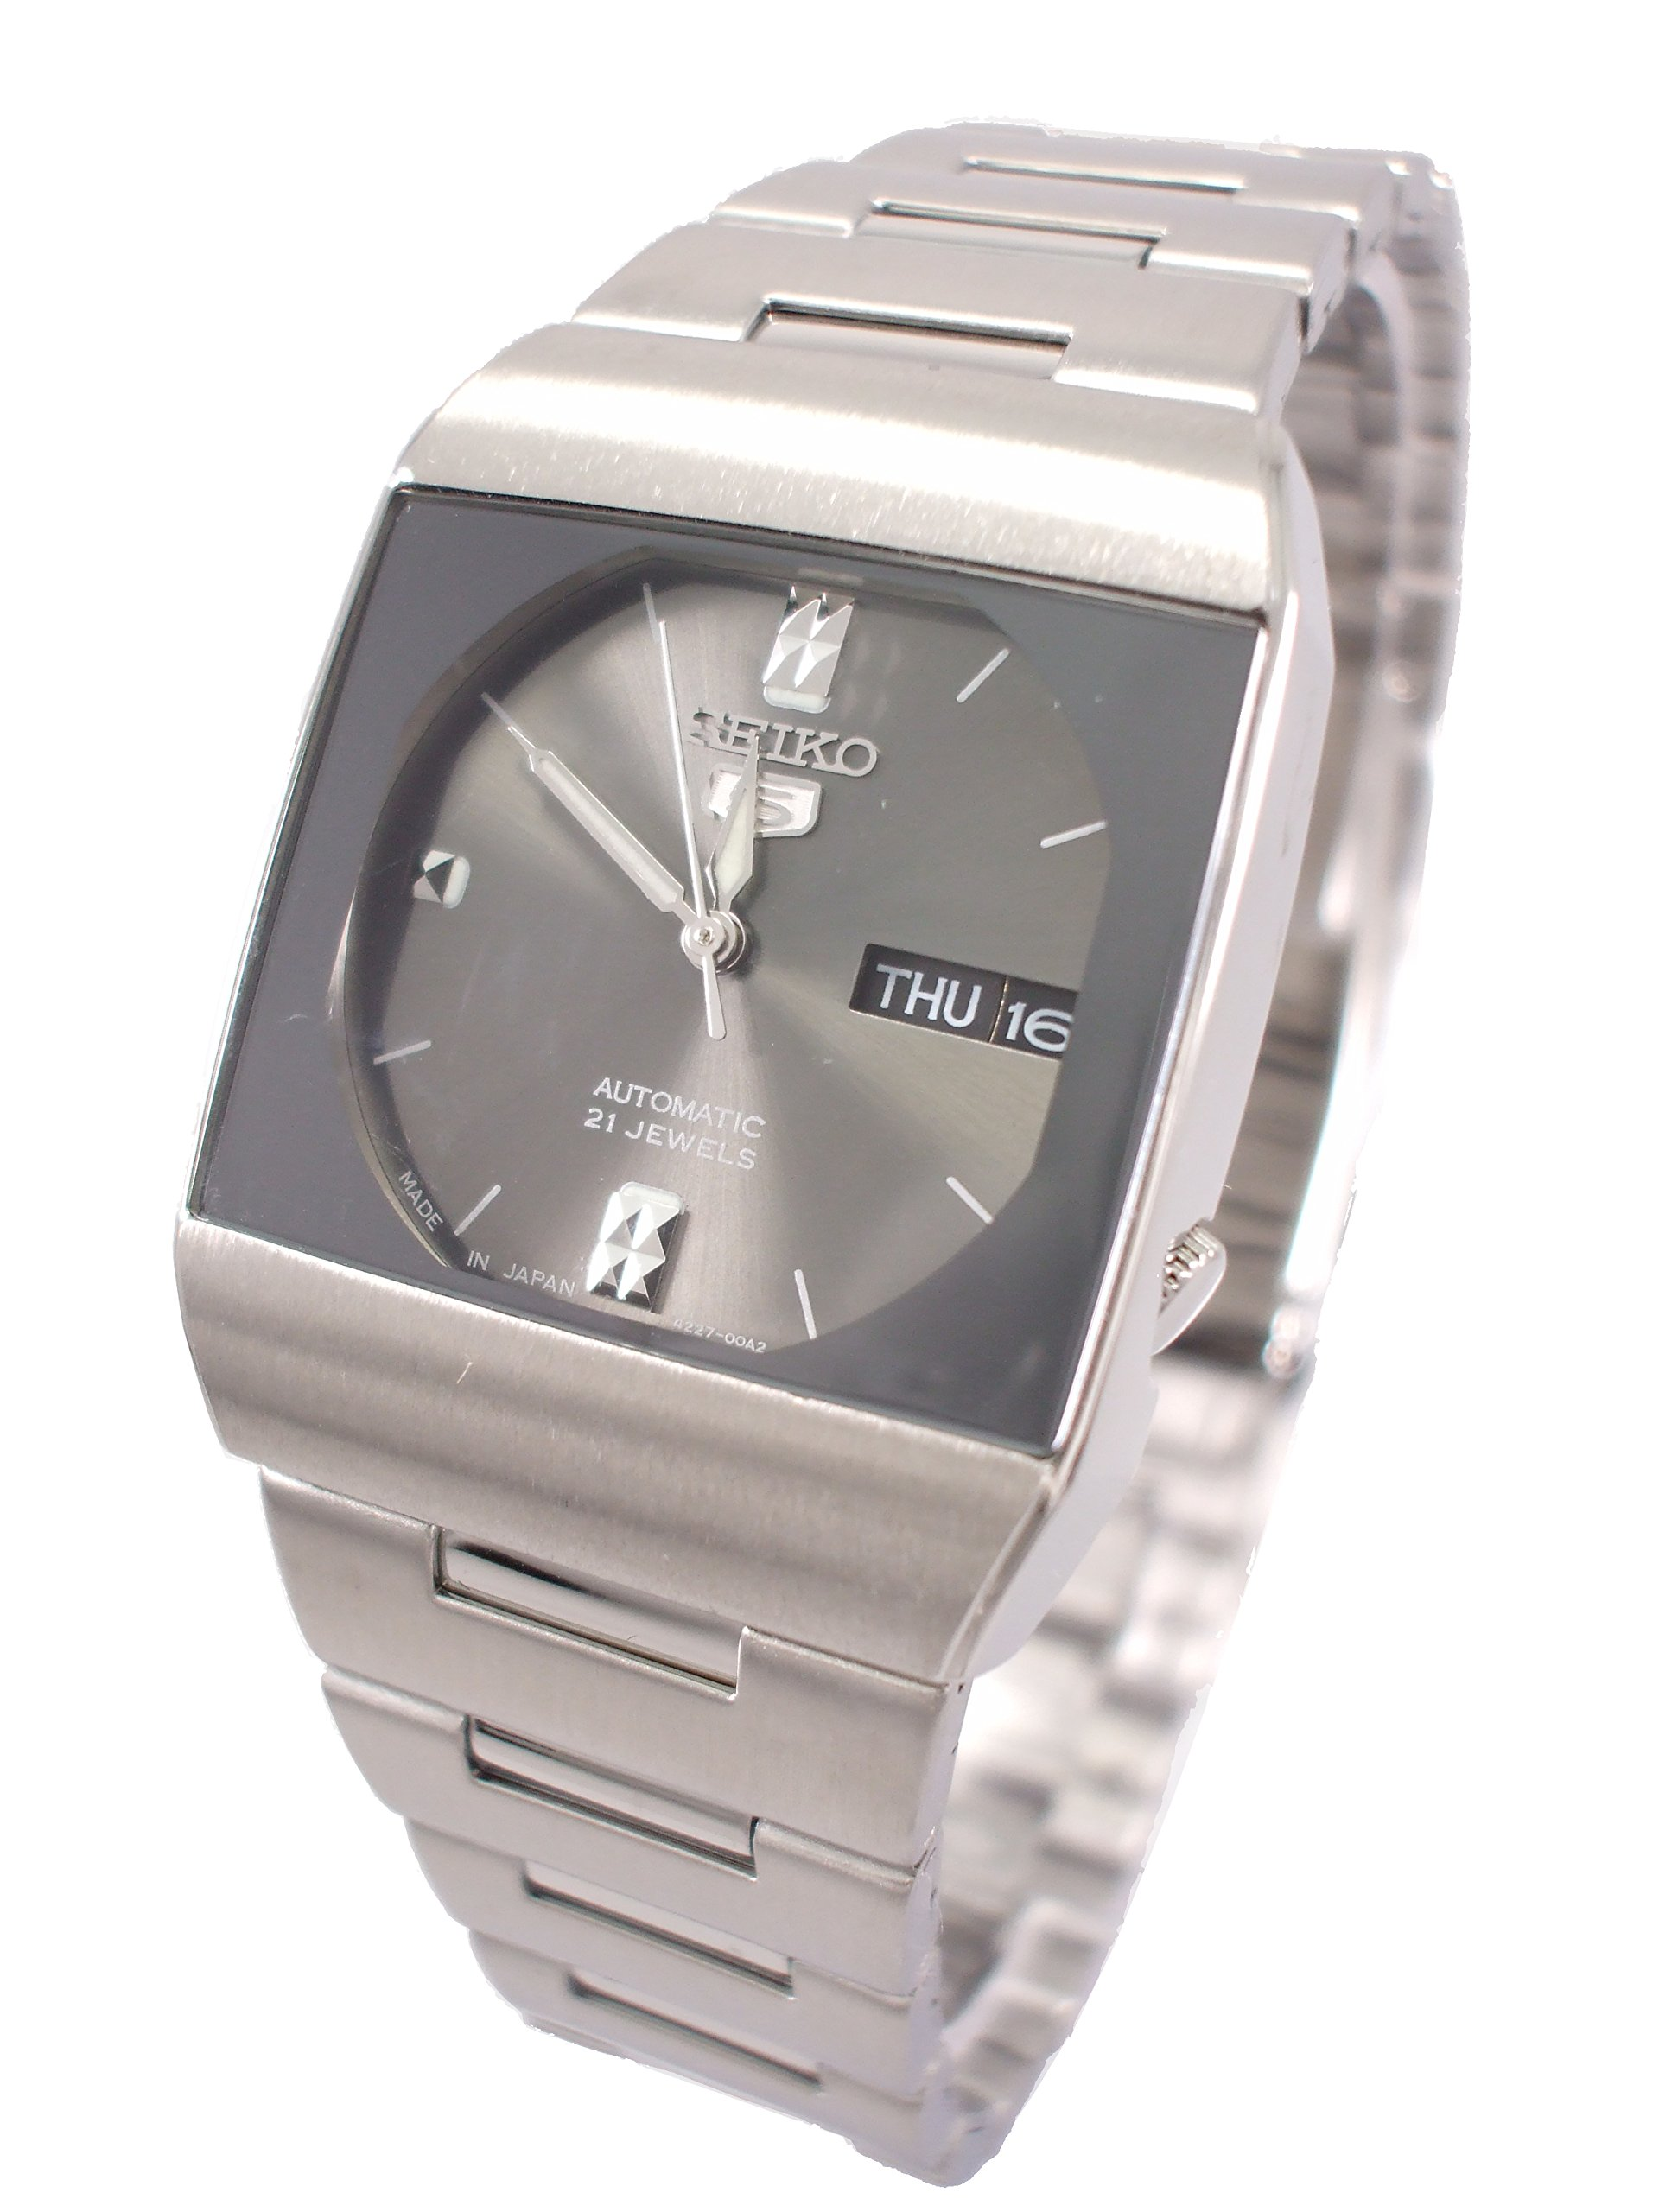 SEIKO 5 DRESS made in Japan automatic watch SNY001J1